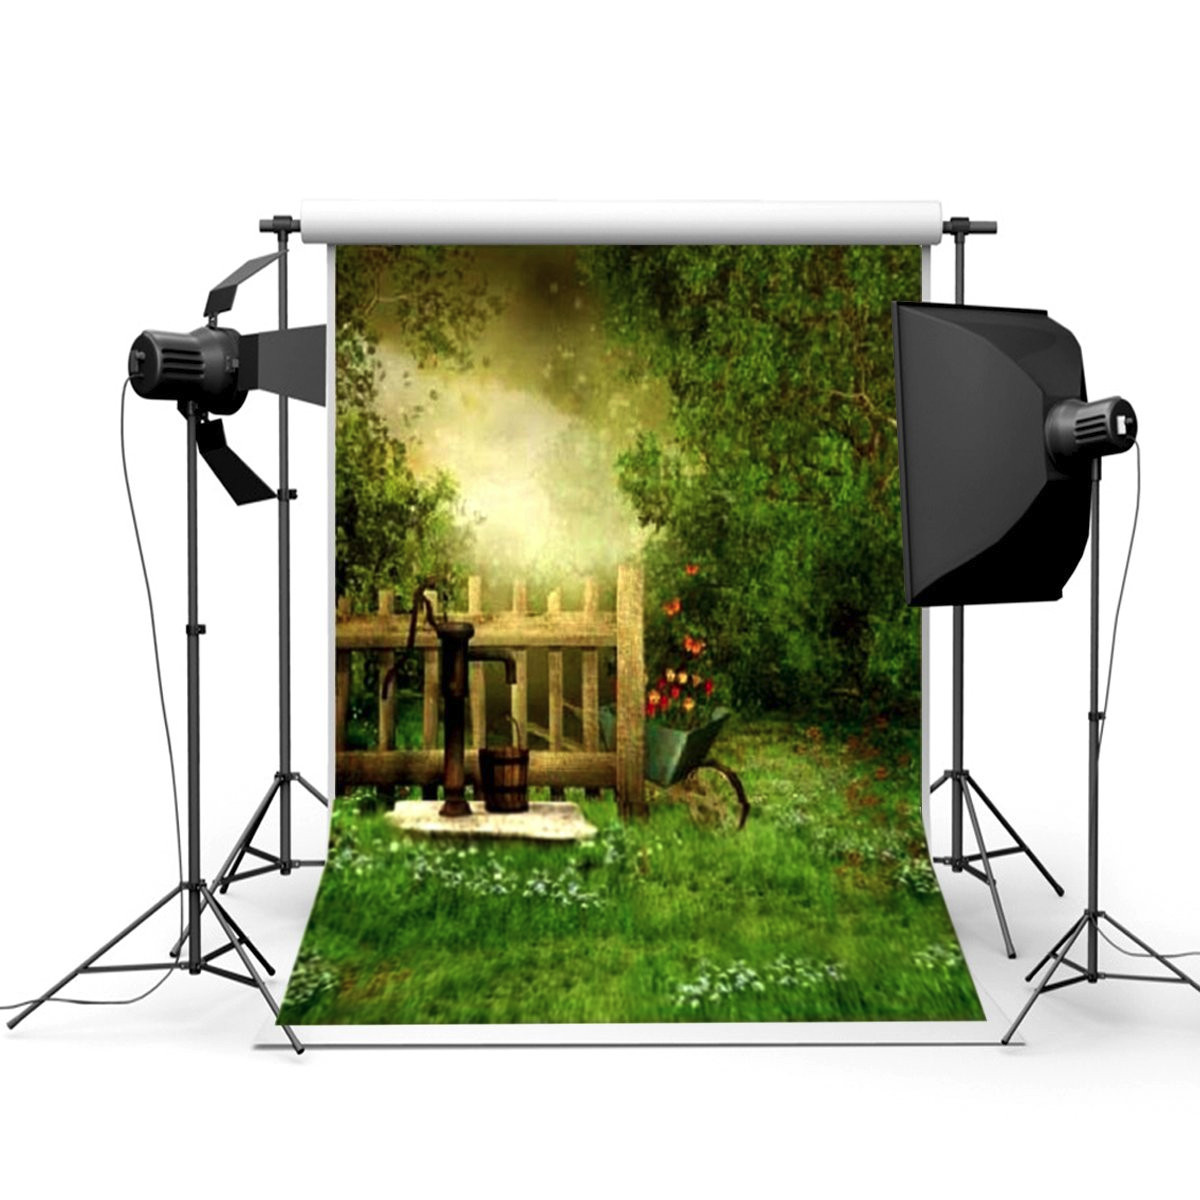 3x5Ft Outdoor Spring Fence Photography Background Backdrop Studio Prop